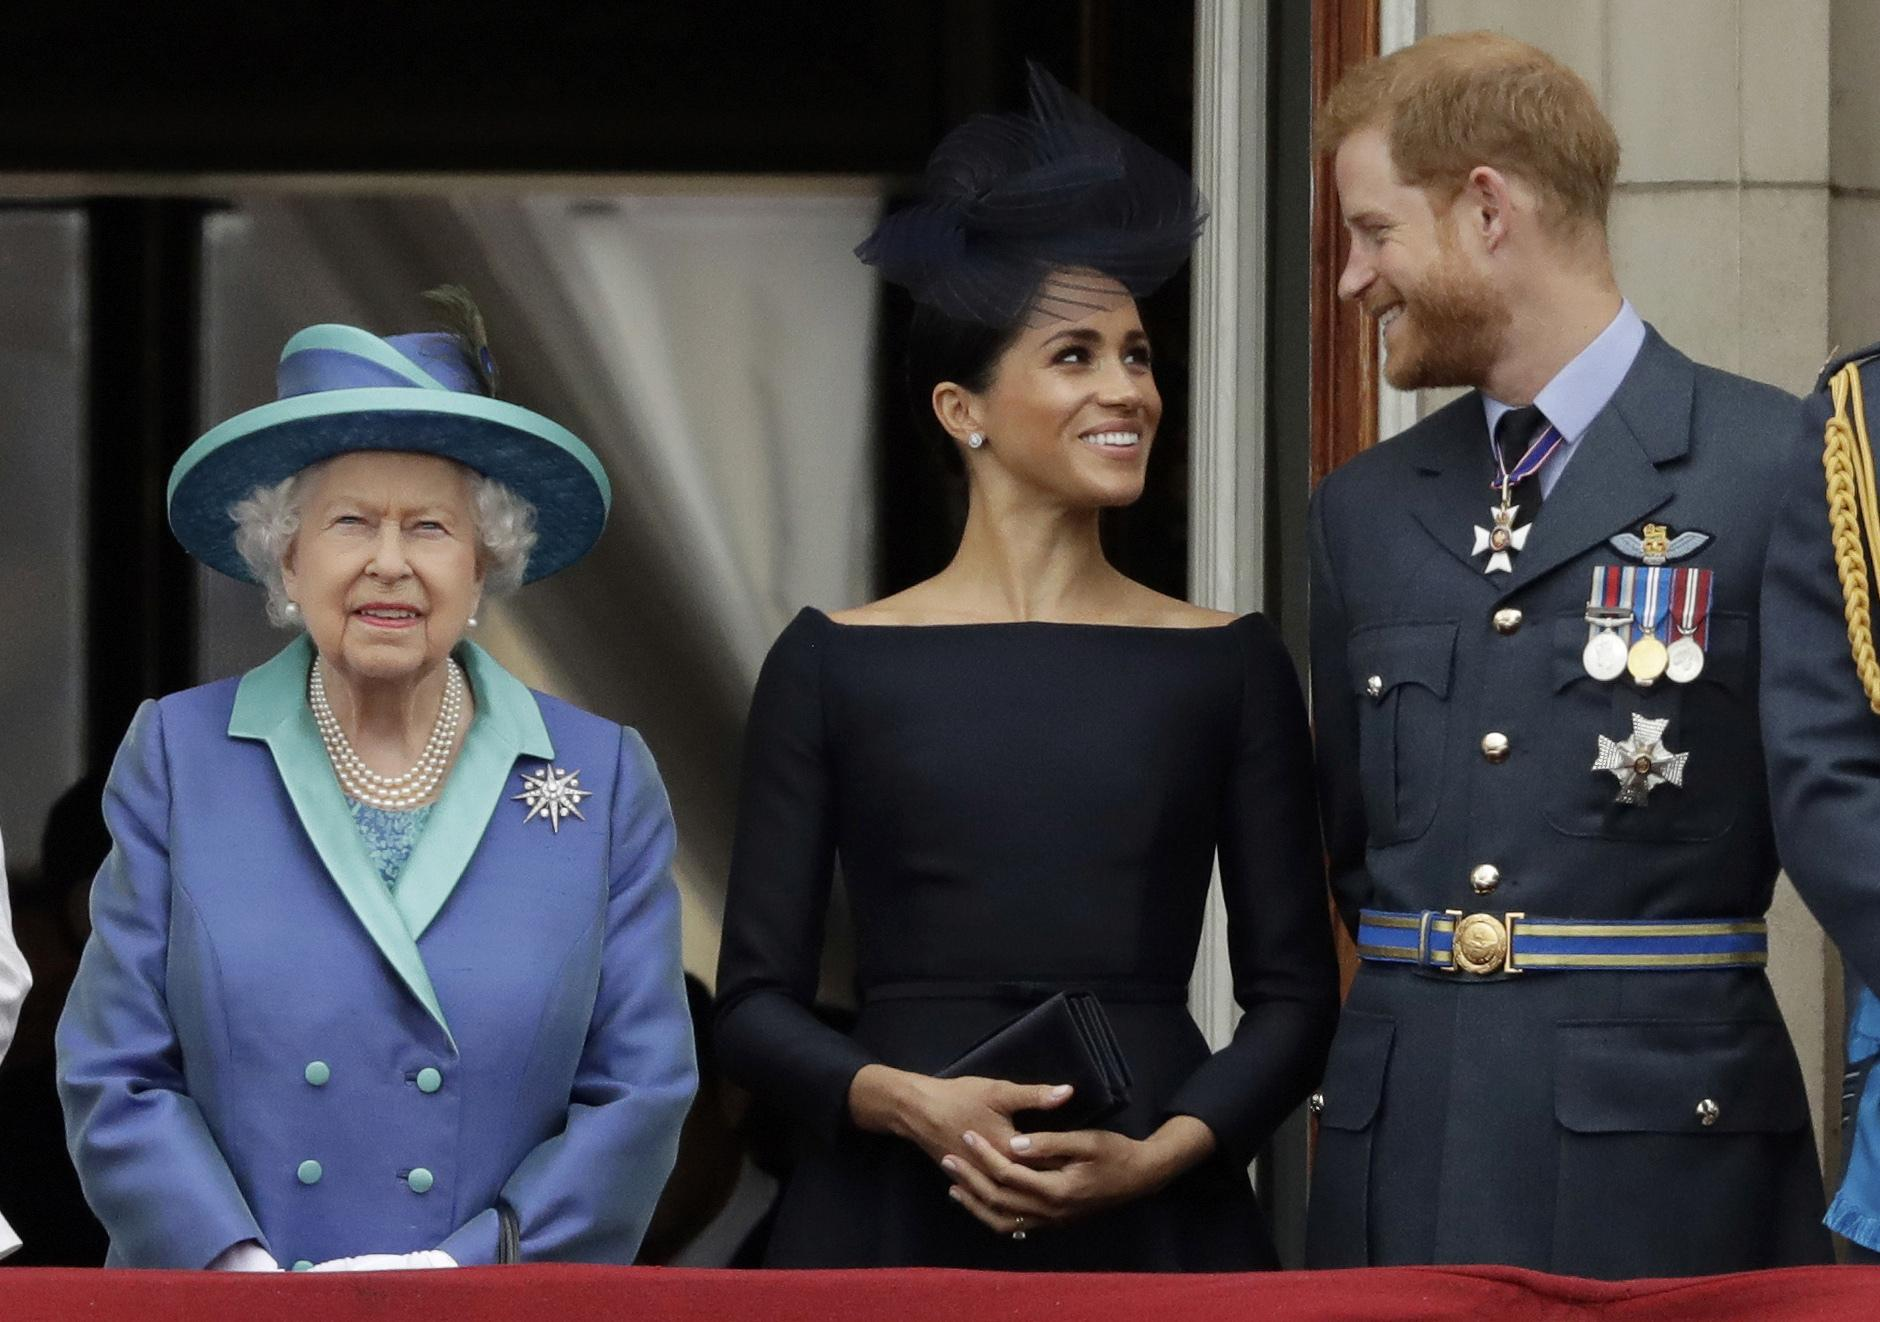 For Harry and Meghan, the fairy-tale is over and the circus begins